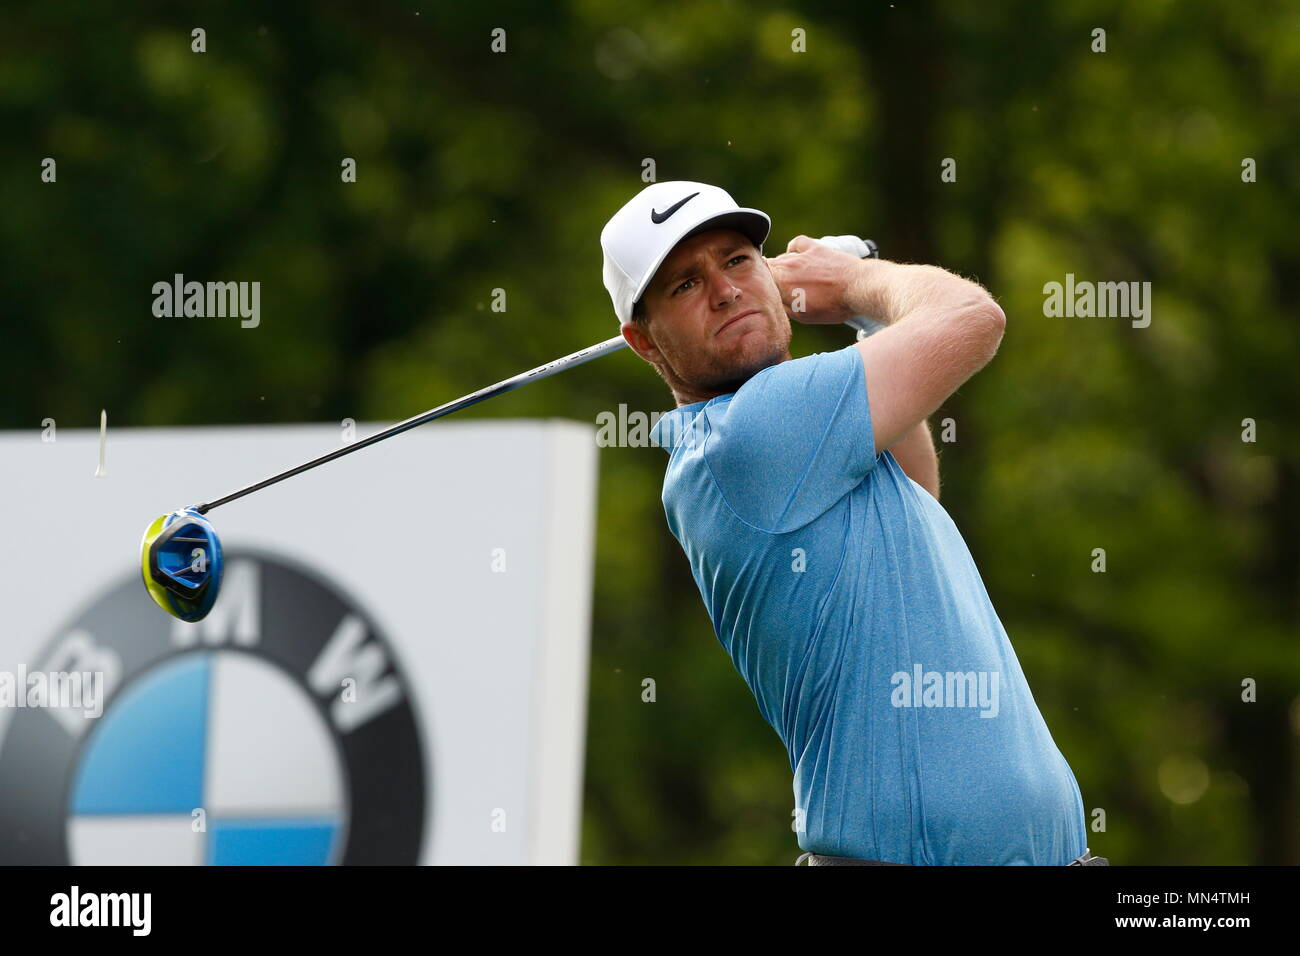 VIRGINIA WATER, ENGLAND - MAY 27: on the xx hole during day two of the BMW PGA Championship at Wentworth on May 27, 2016 in Virginia Water, England. - Stock Image